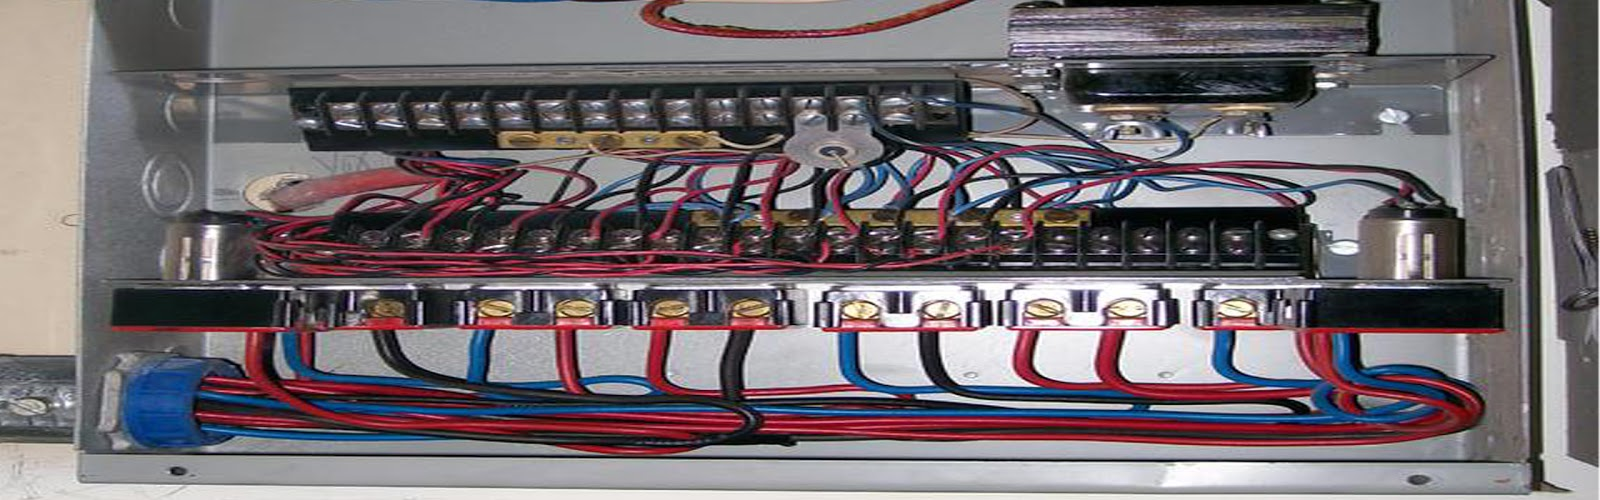 small resolution of offering conventional electrical services such as adding circuits and trouble shooting as well as less conventional services including low voltage wiring